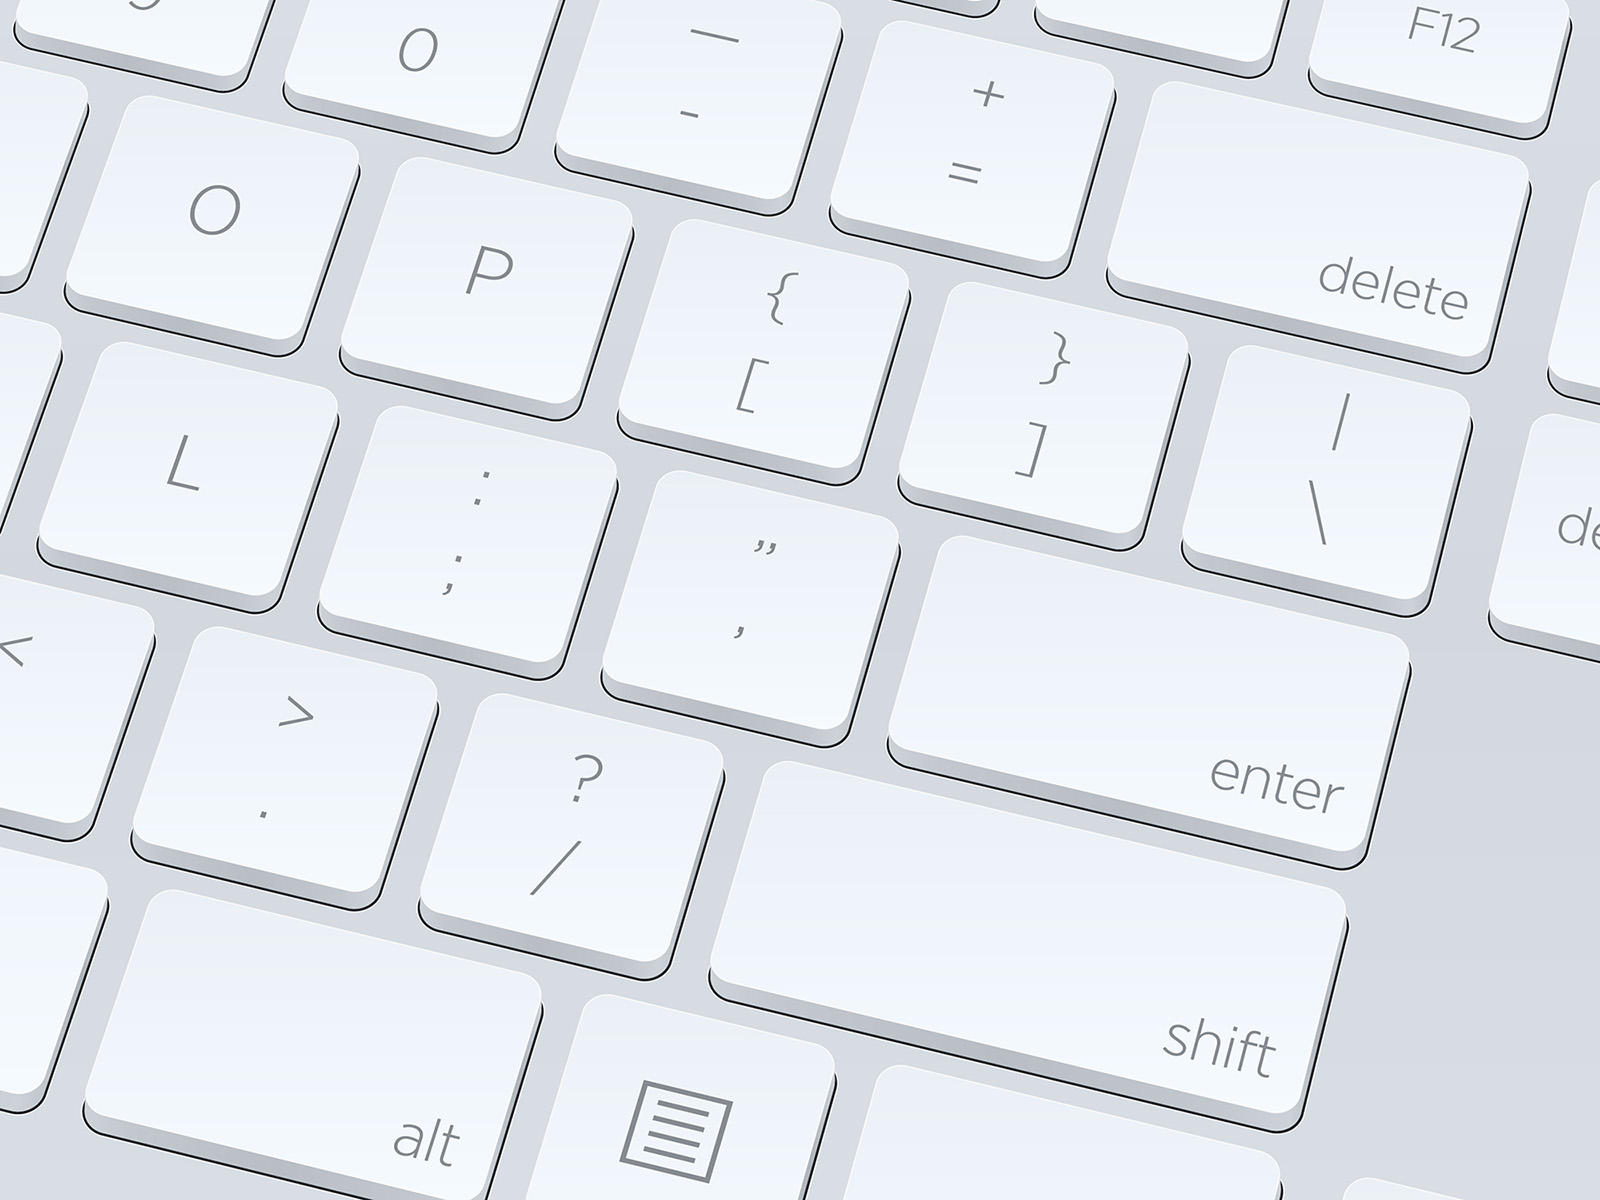 White Blank Computer Keyboard Close Up Vector Image